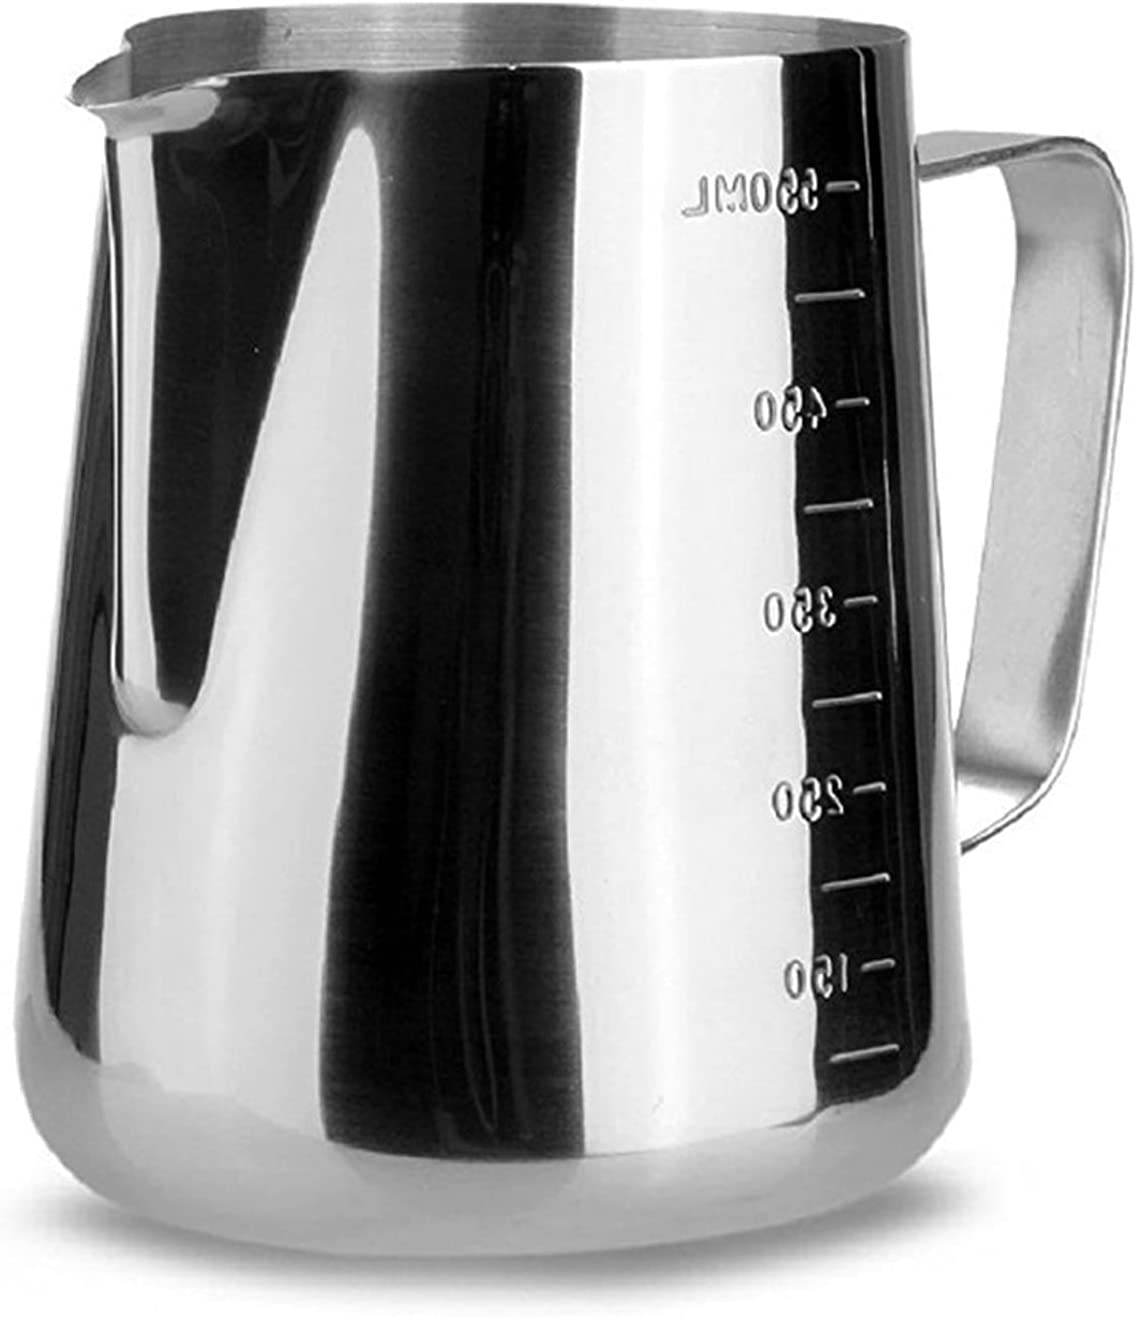 Popular brand Max 63% OFF Stainless Steel Milk Frothing Jug Pots Coffee Mug Espresso Pitch